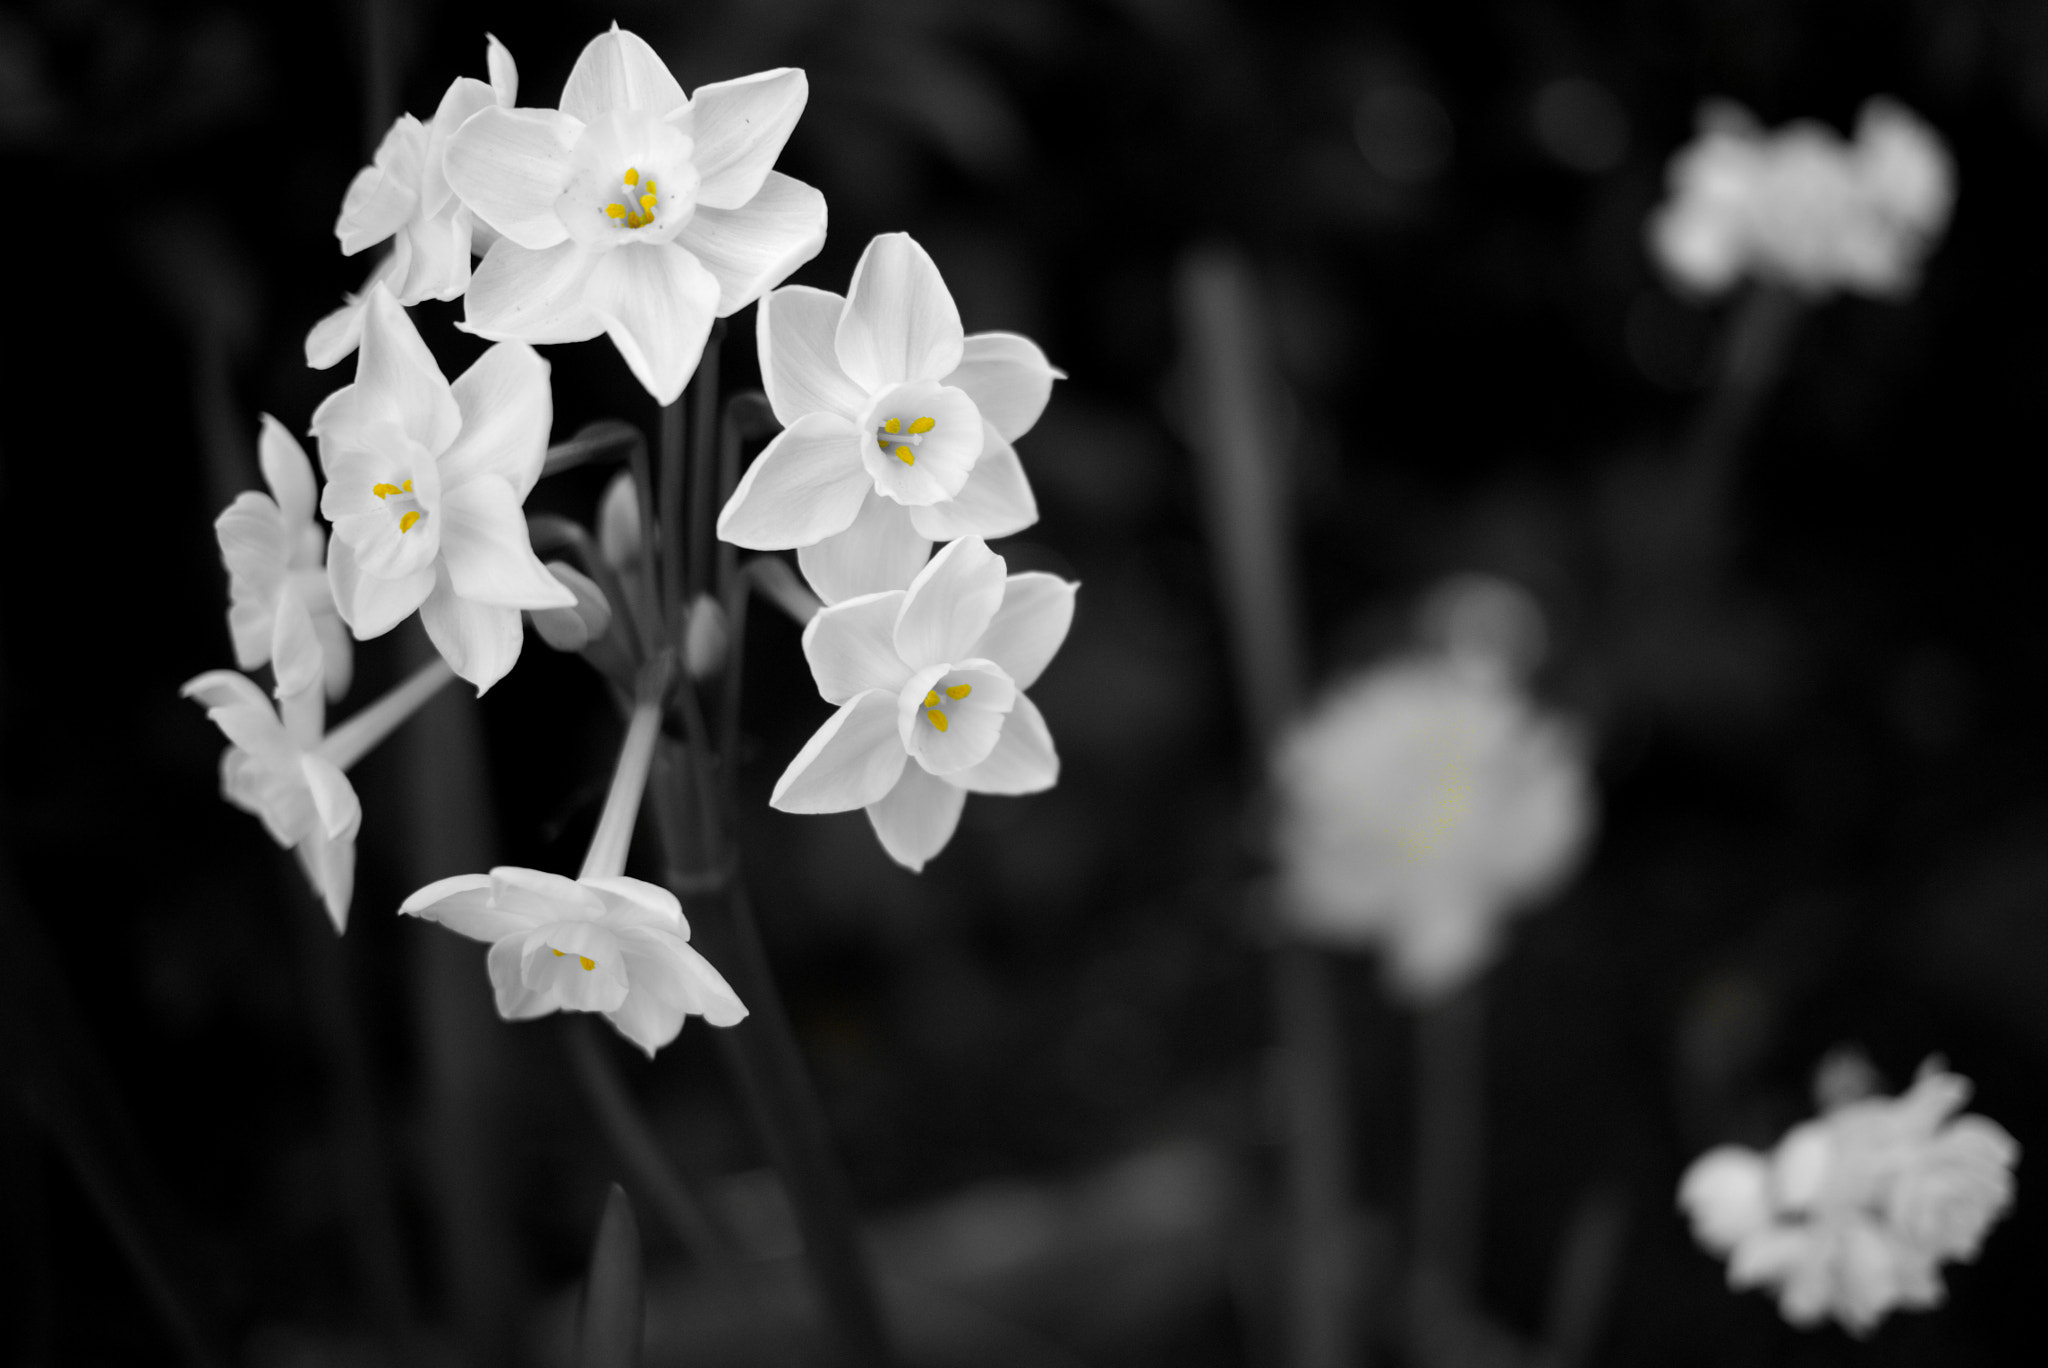 Photograph B&W Daffs with a touch of yellow by Christopher Hunt on 500px